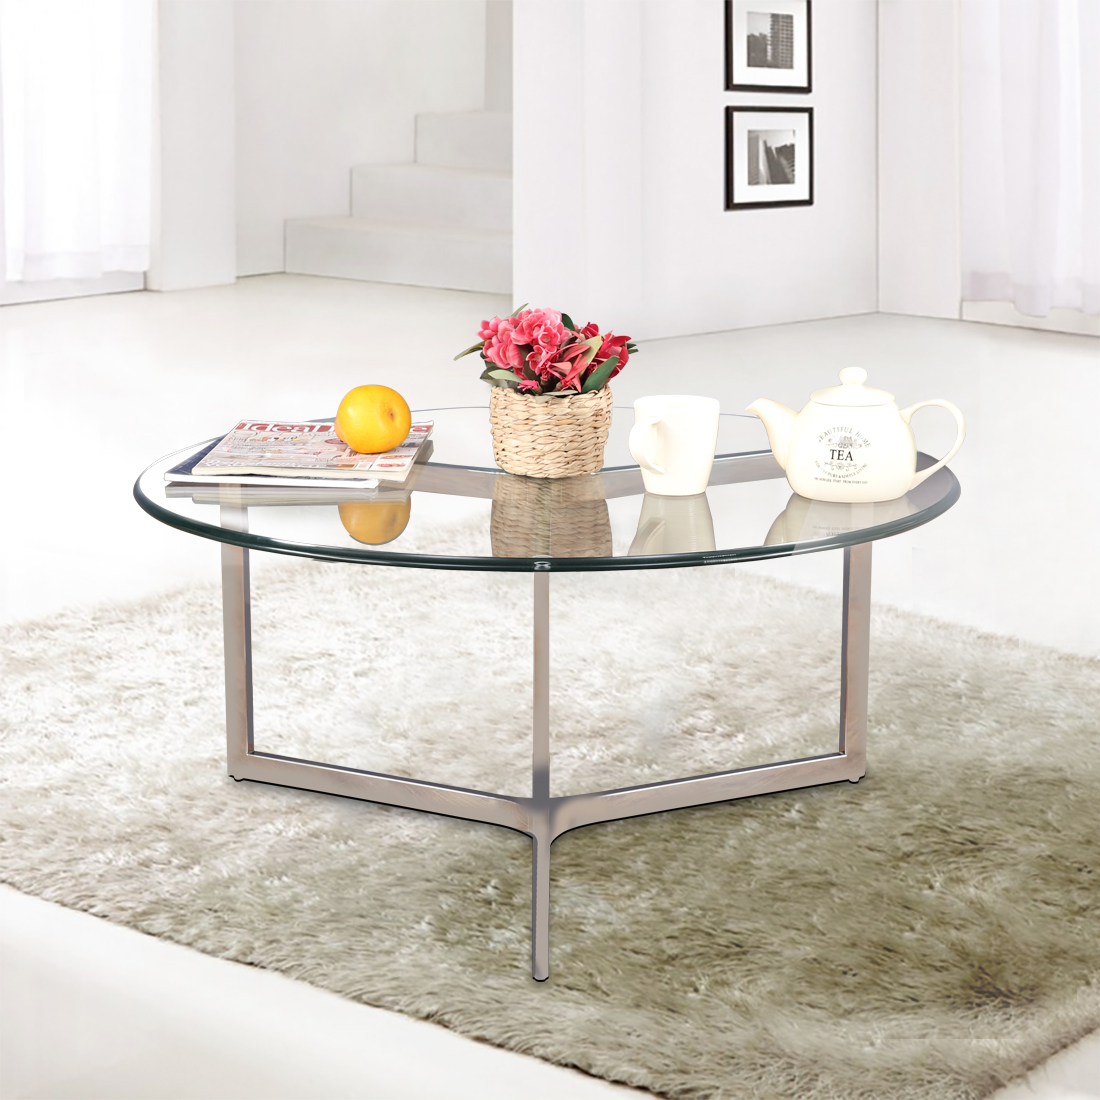 Benz Stainless steel Glass Top Center Table in Transparent Colour by HomeTown